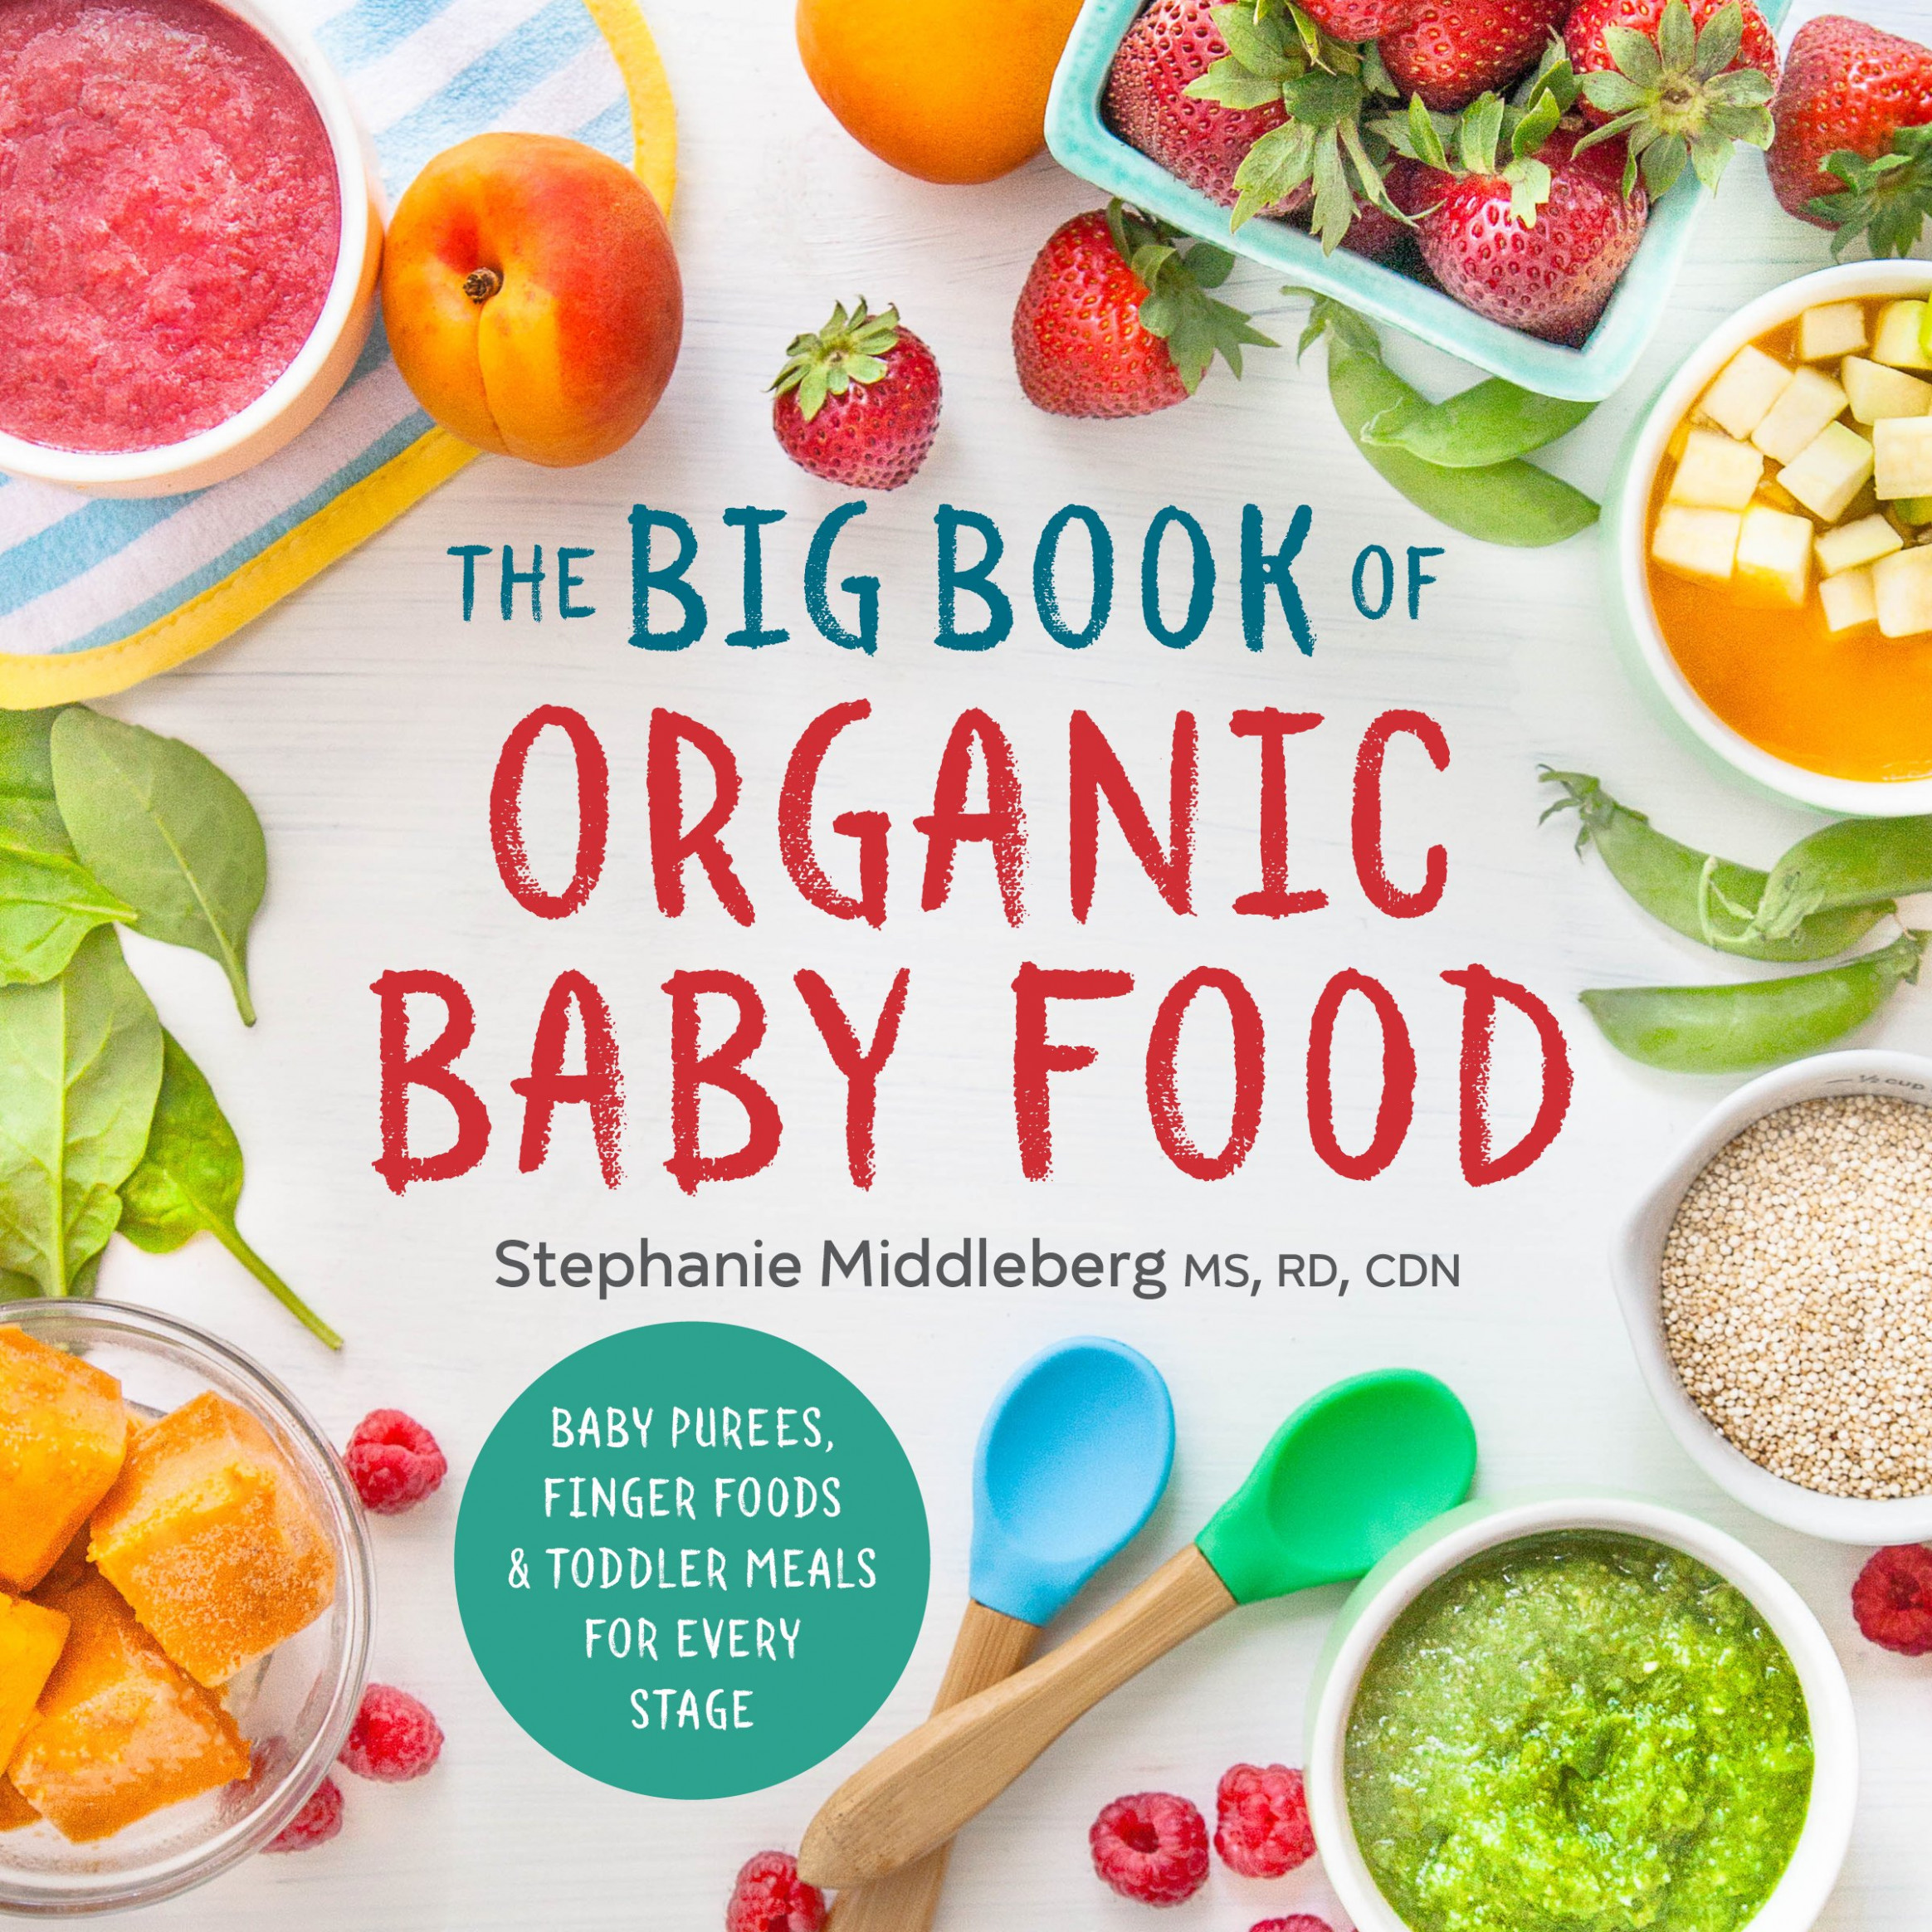 The Big Book of Organic Baby Food: Baby Purées, Finger Foods ..